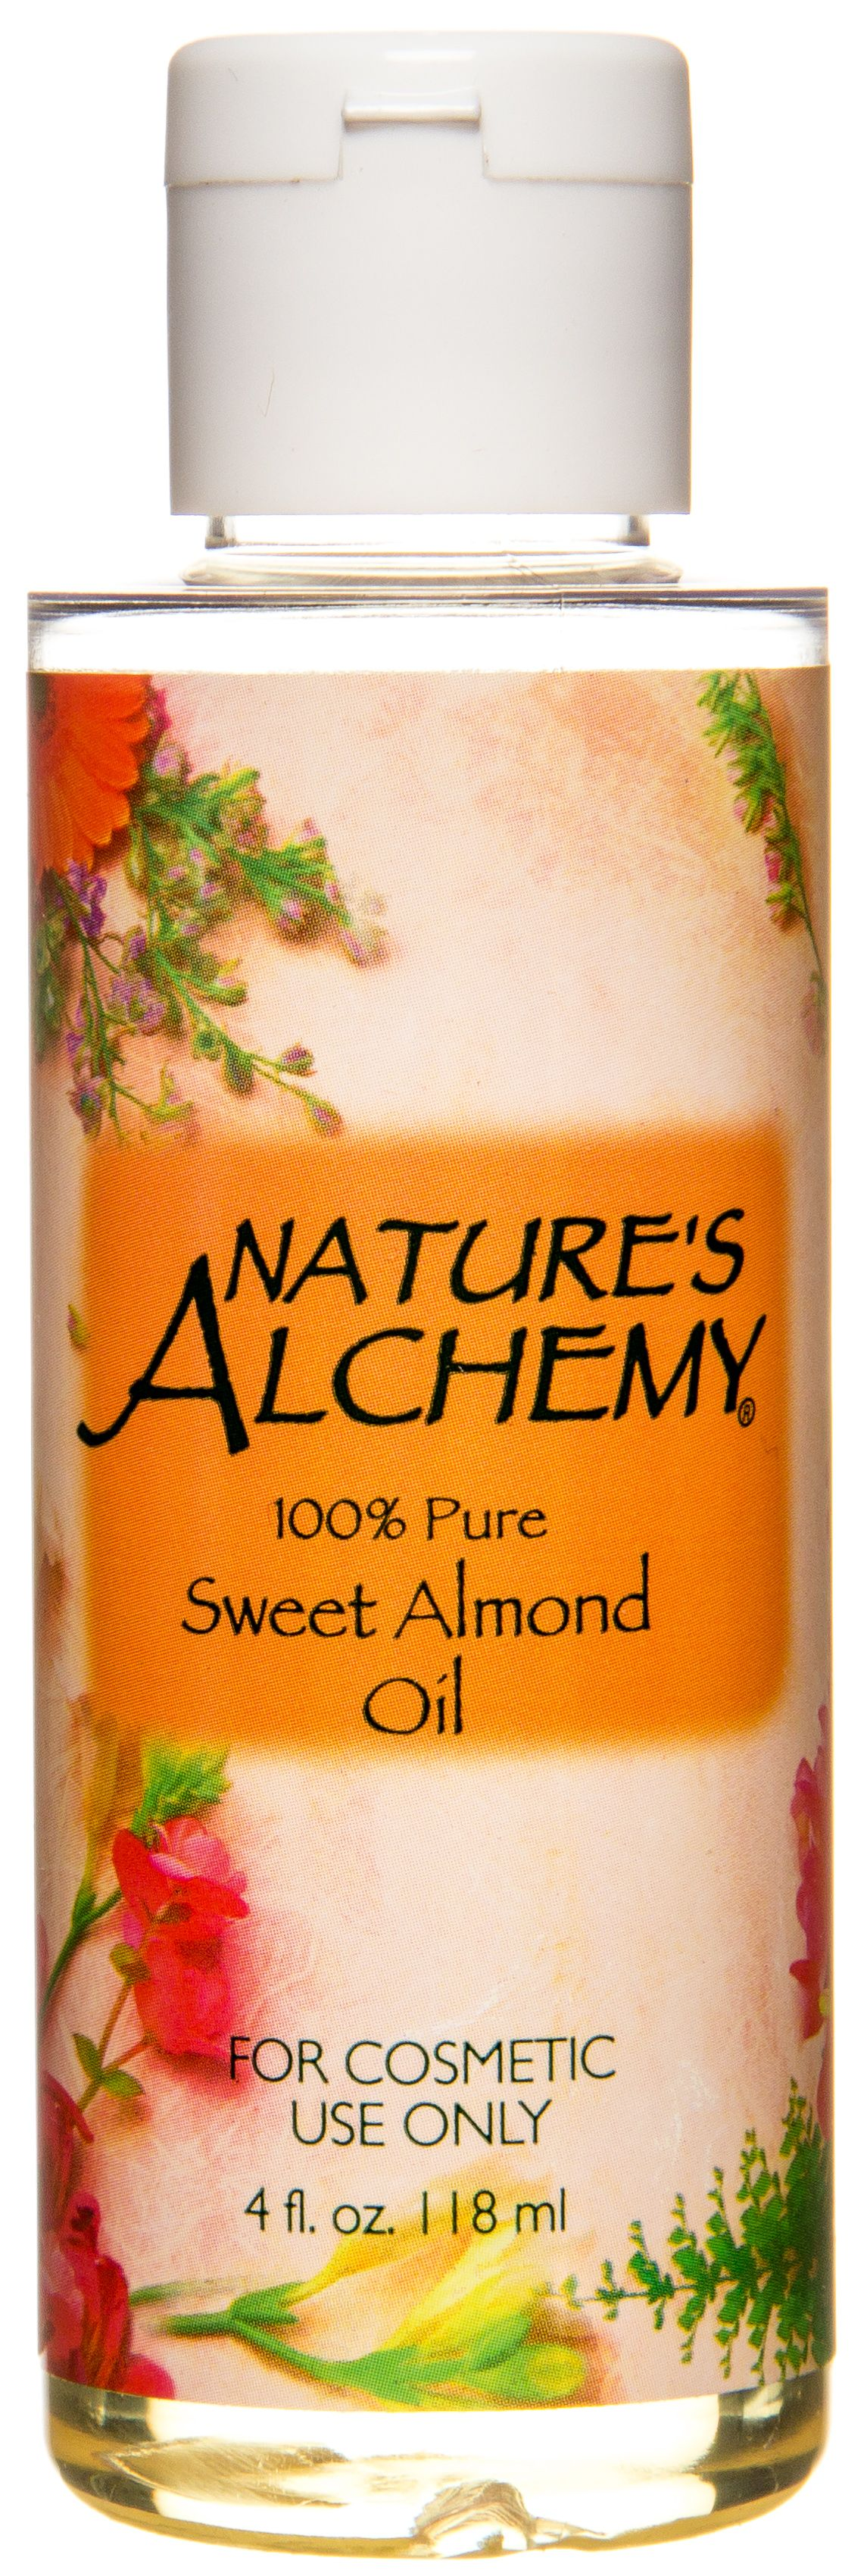 Nature's Alchemy Almond Oil, 4 floz #jojobaoil